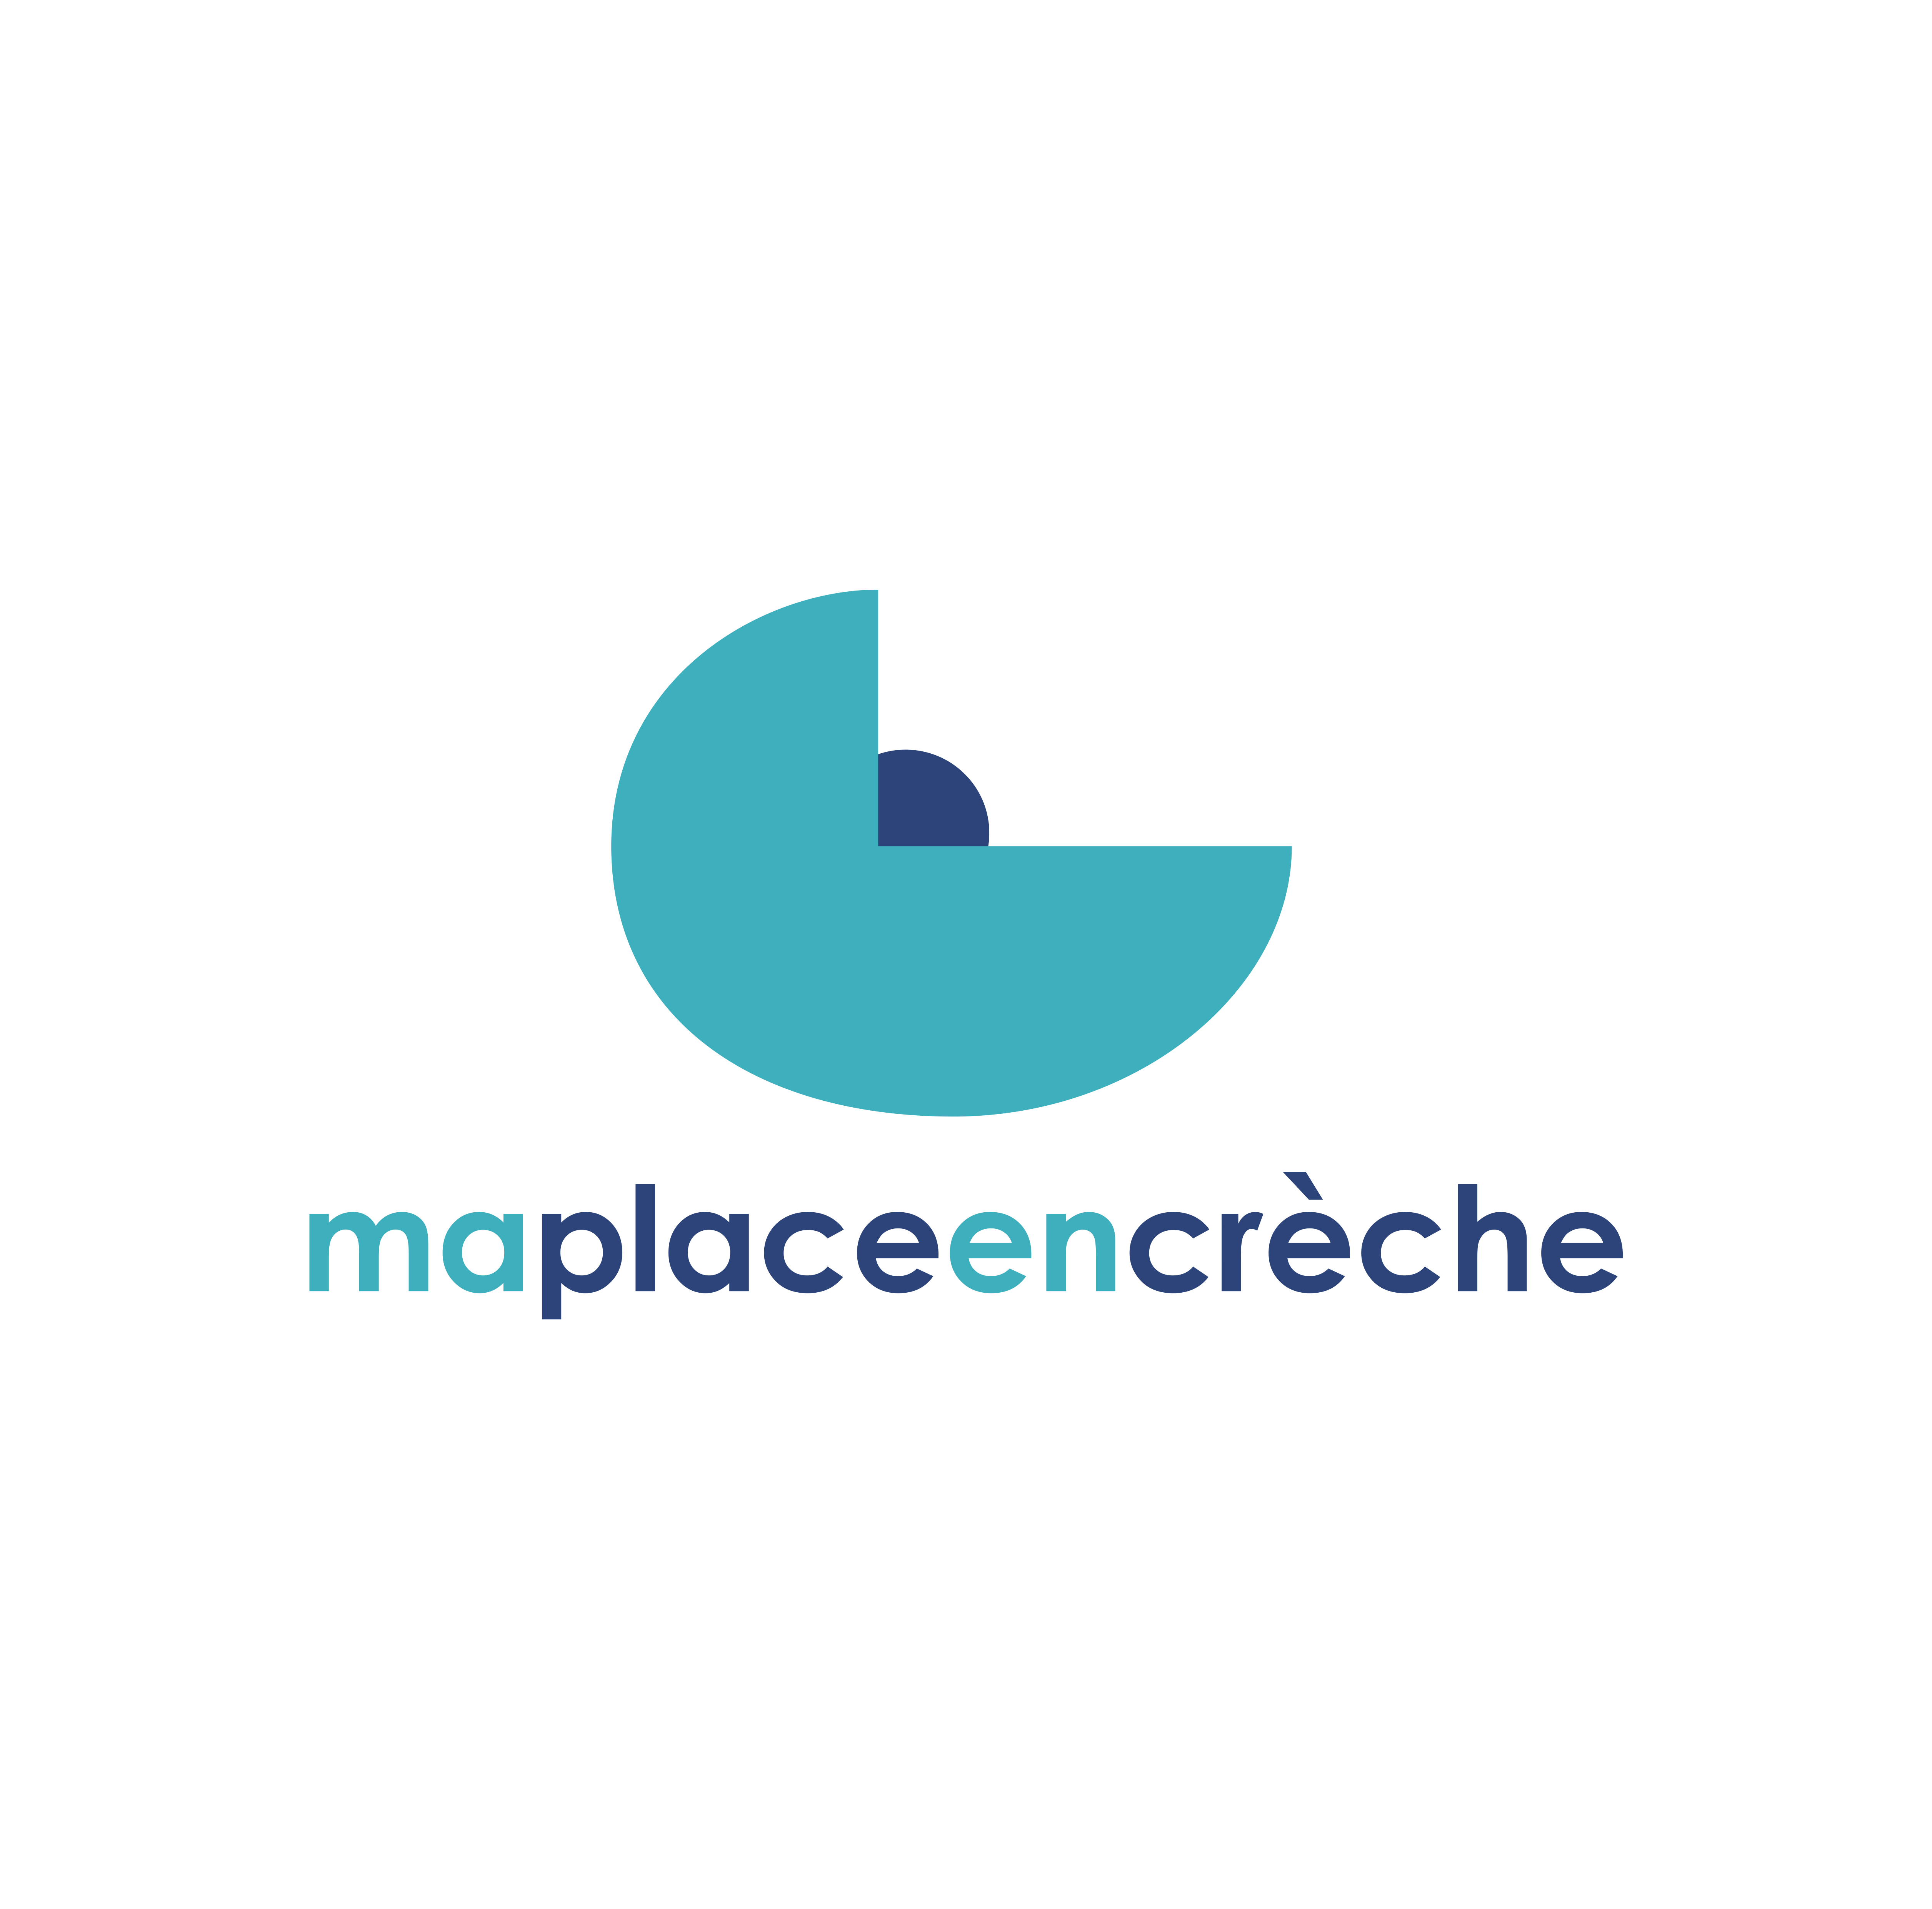 maplaceencrèche